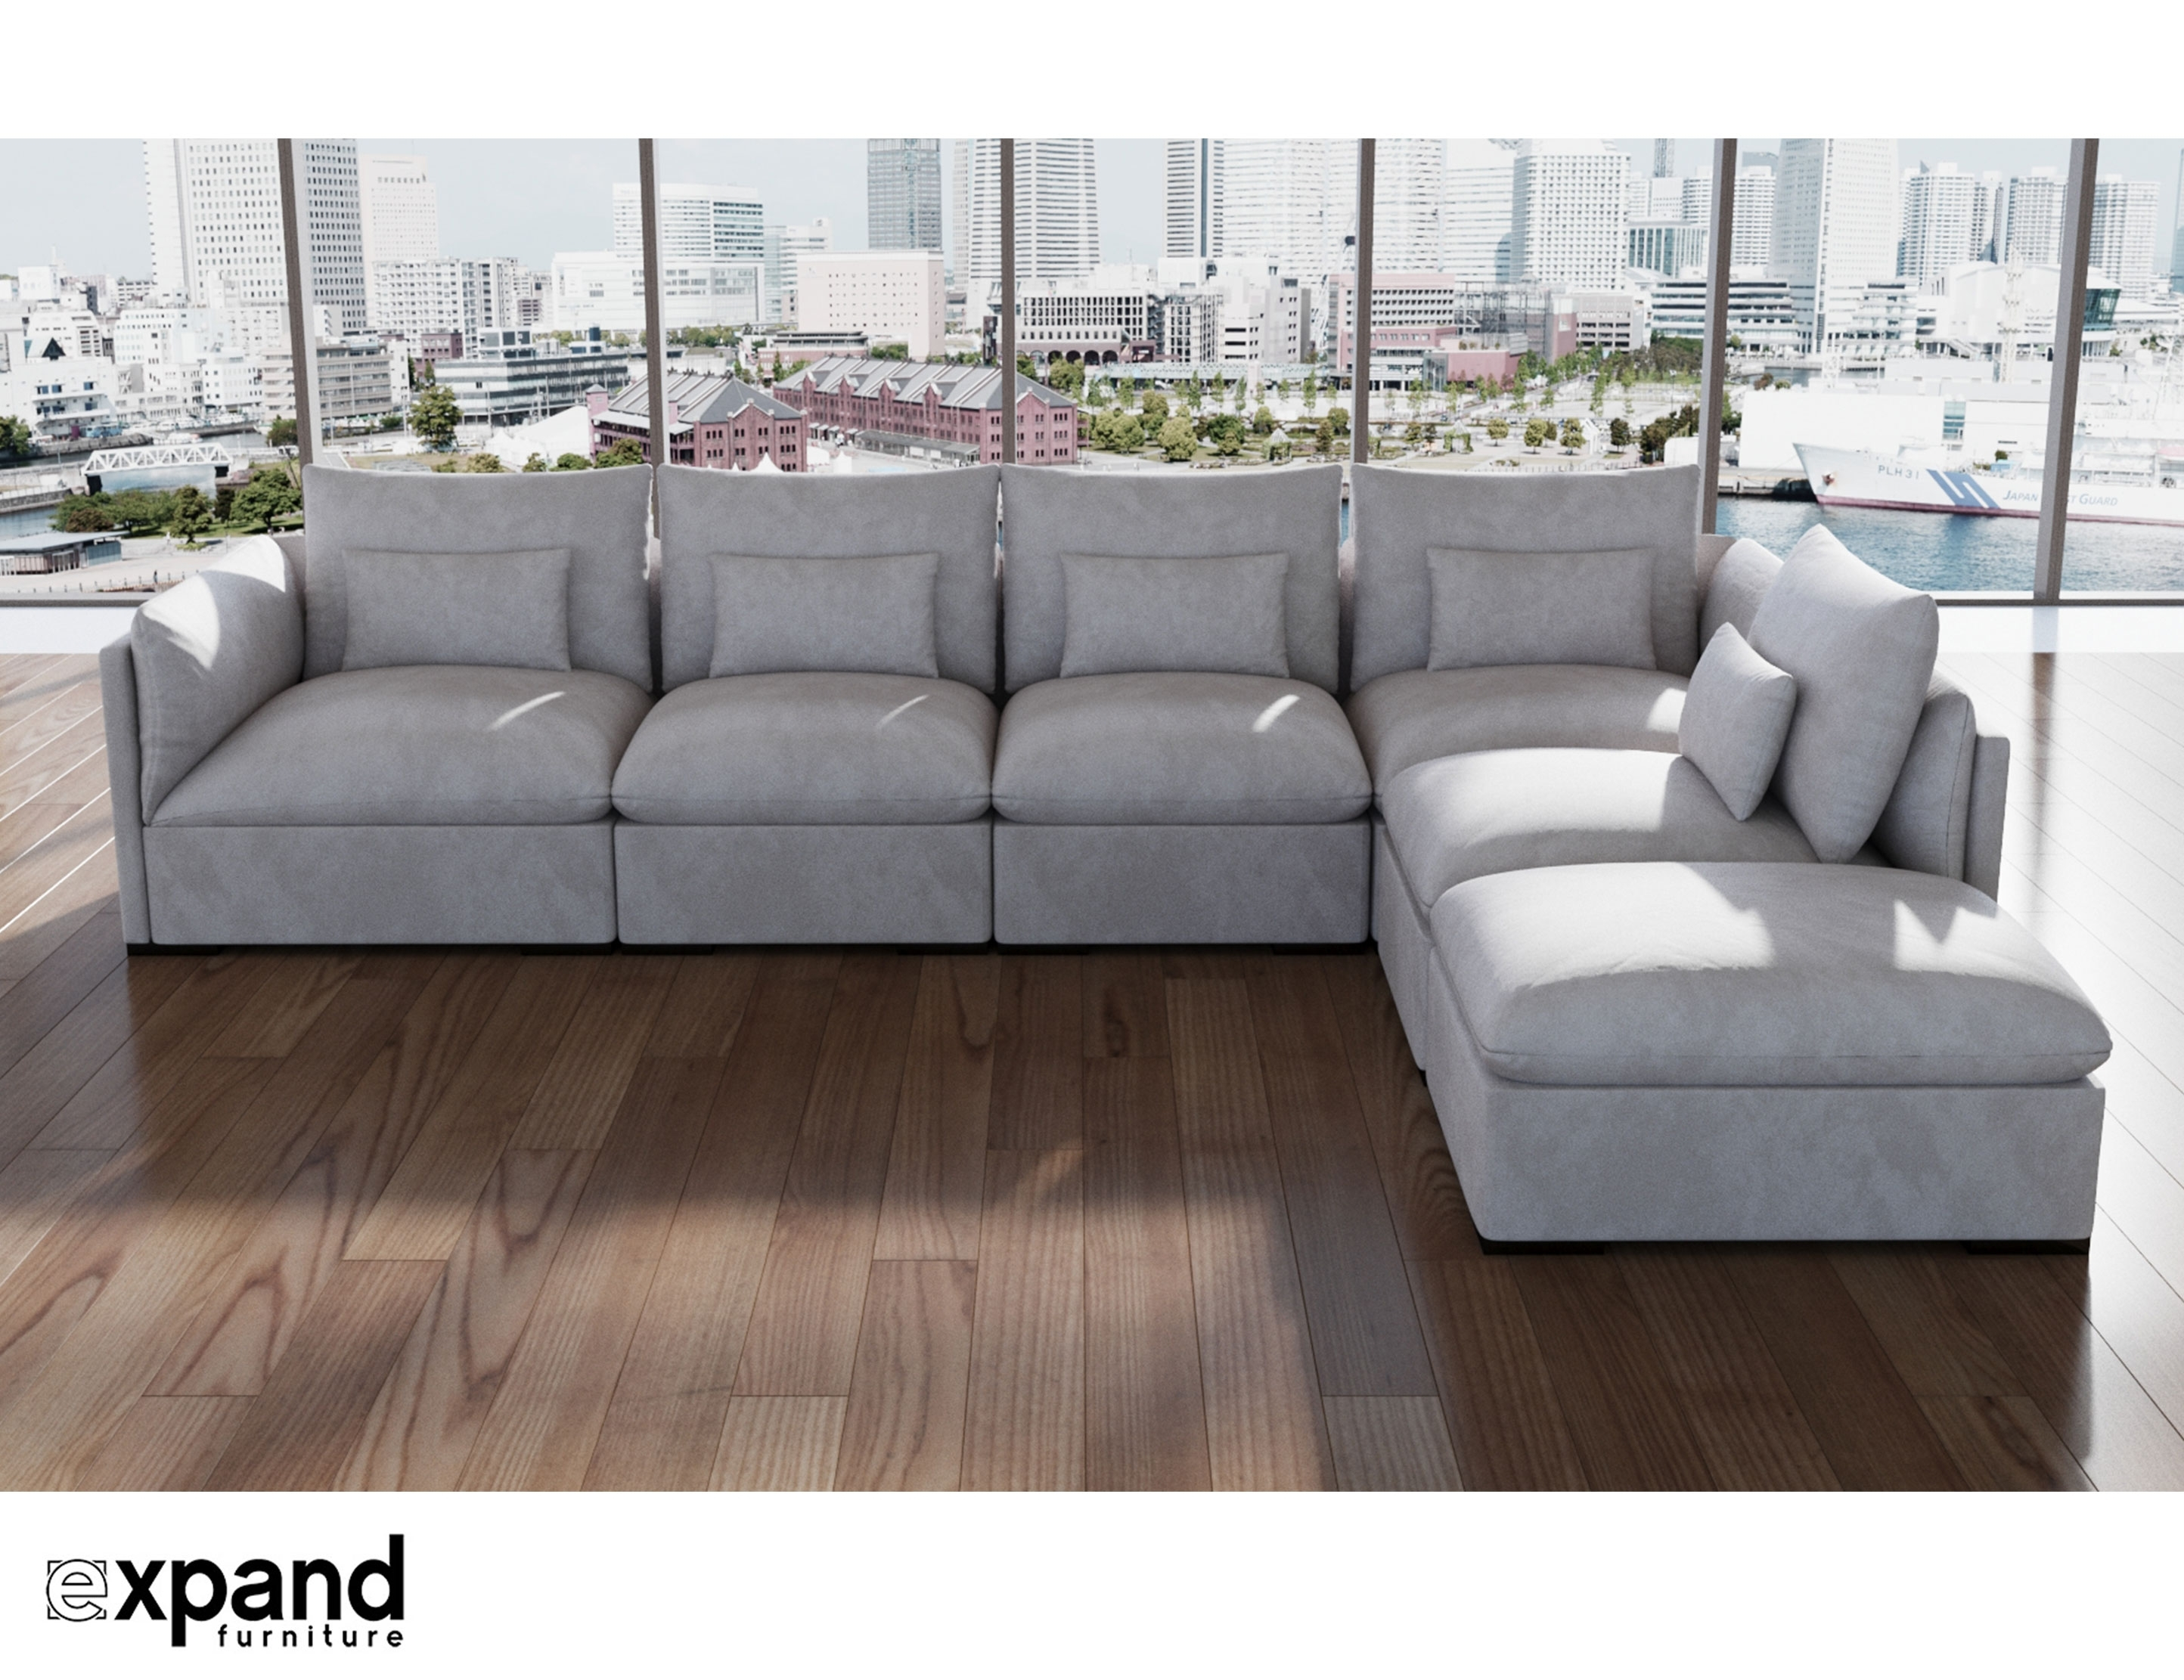 Adagio: Luxury Sectional Modular Sofa Set Of 4 | Expand Furniture Intended For Down Feather Sectional Sofas (View 8 of 10)